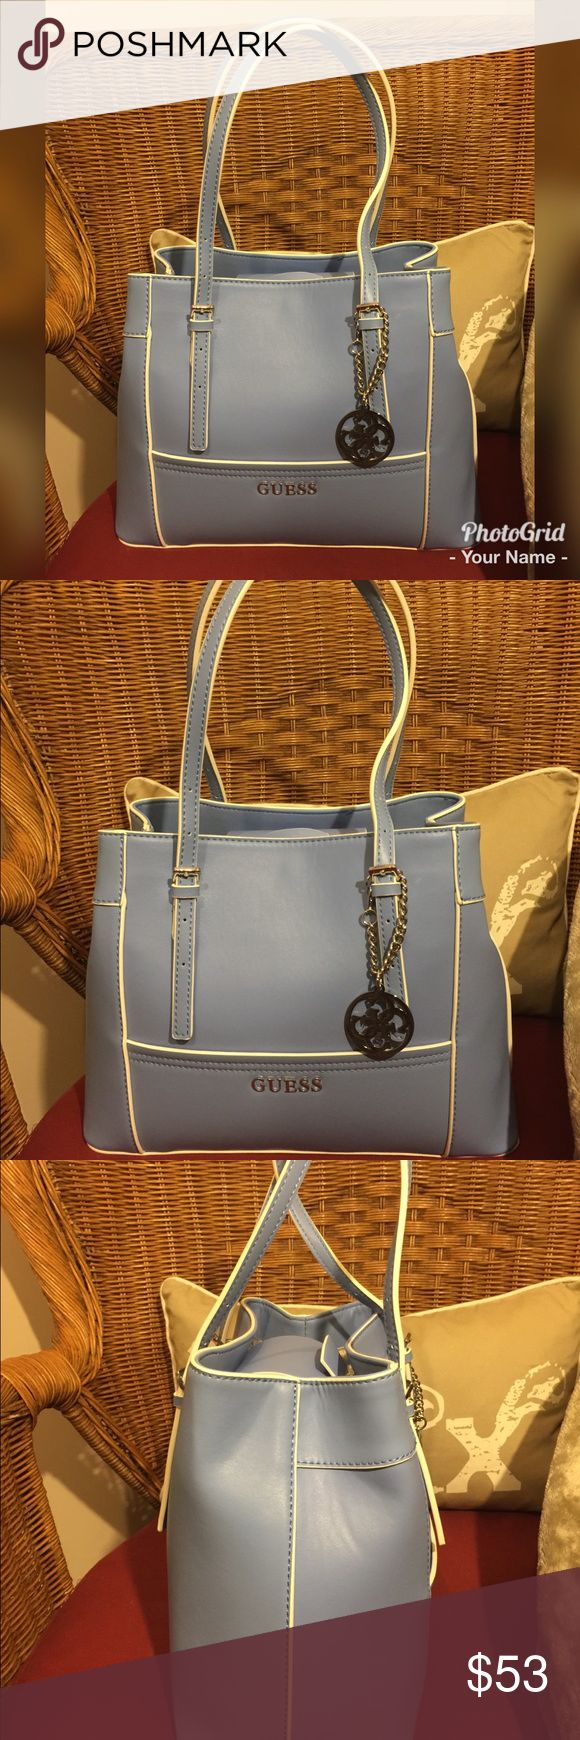 "Guess Powder Blue Handbag 👜 This baby blue handbag has white piping and is just adorable! It is new and never been used and still has its original packaging inside. It's dimensions are 13"" width by 10"" height by 7"" depth. This is a real deal! Currently selling on Amazon for $98!! Guess Bags Totes"